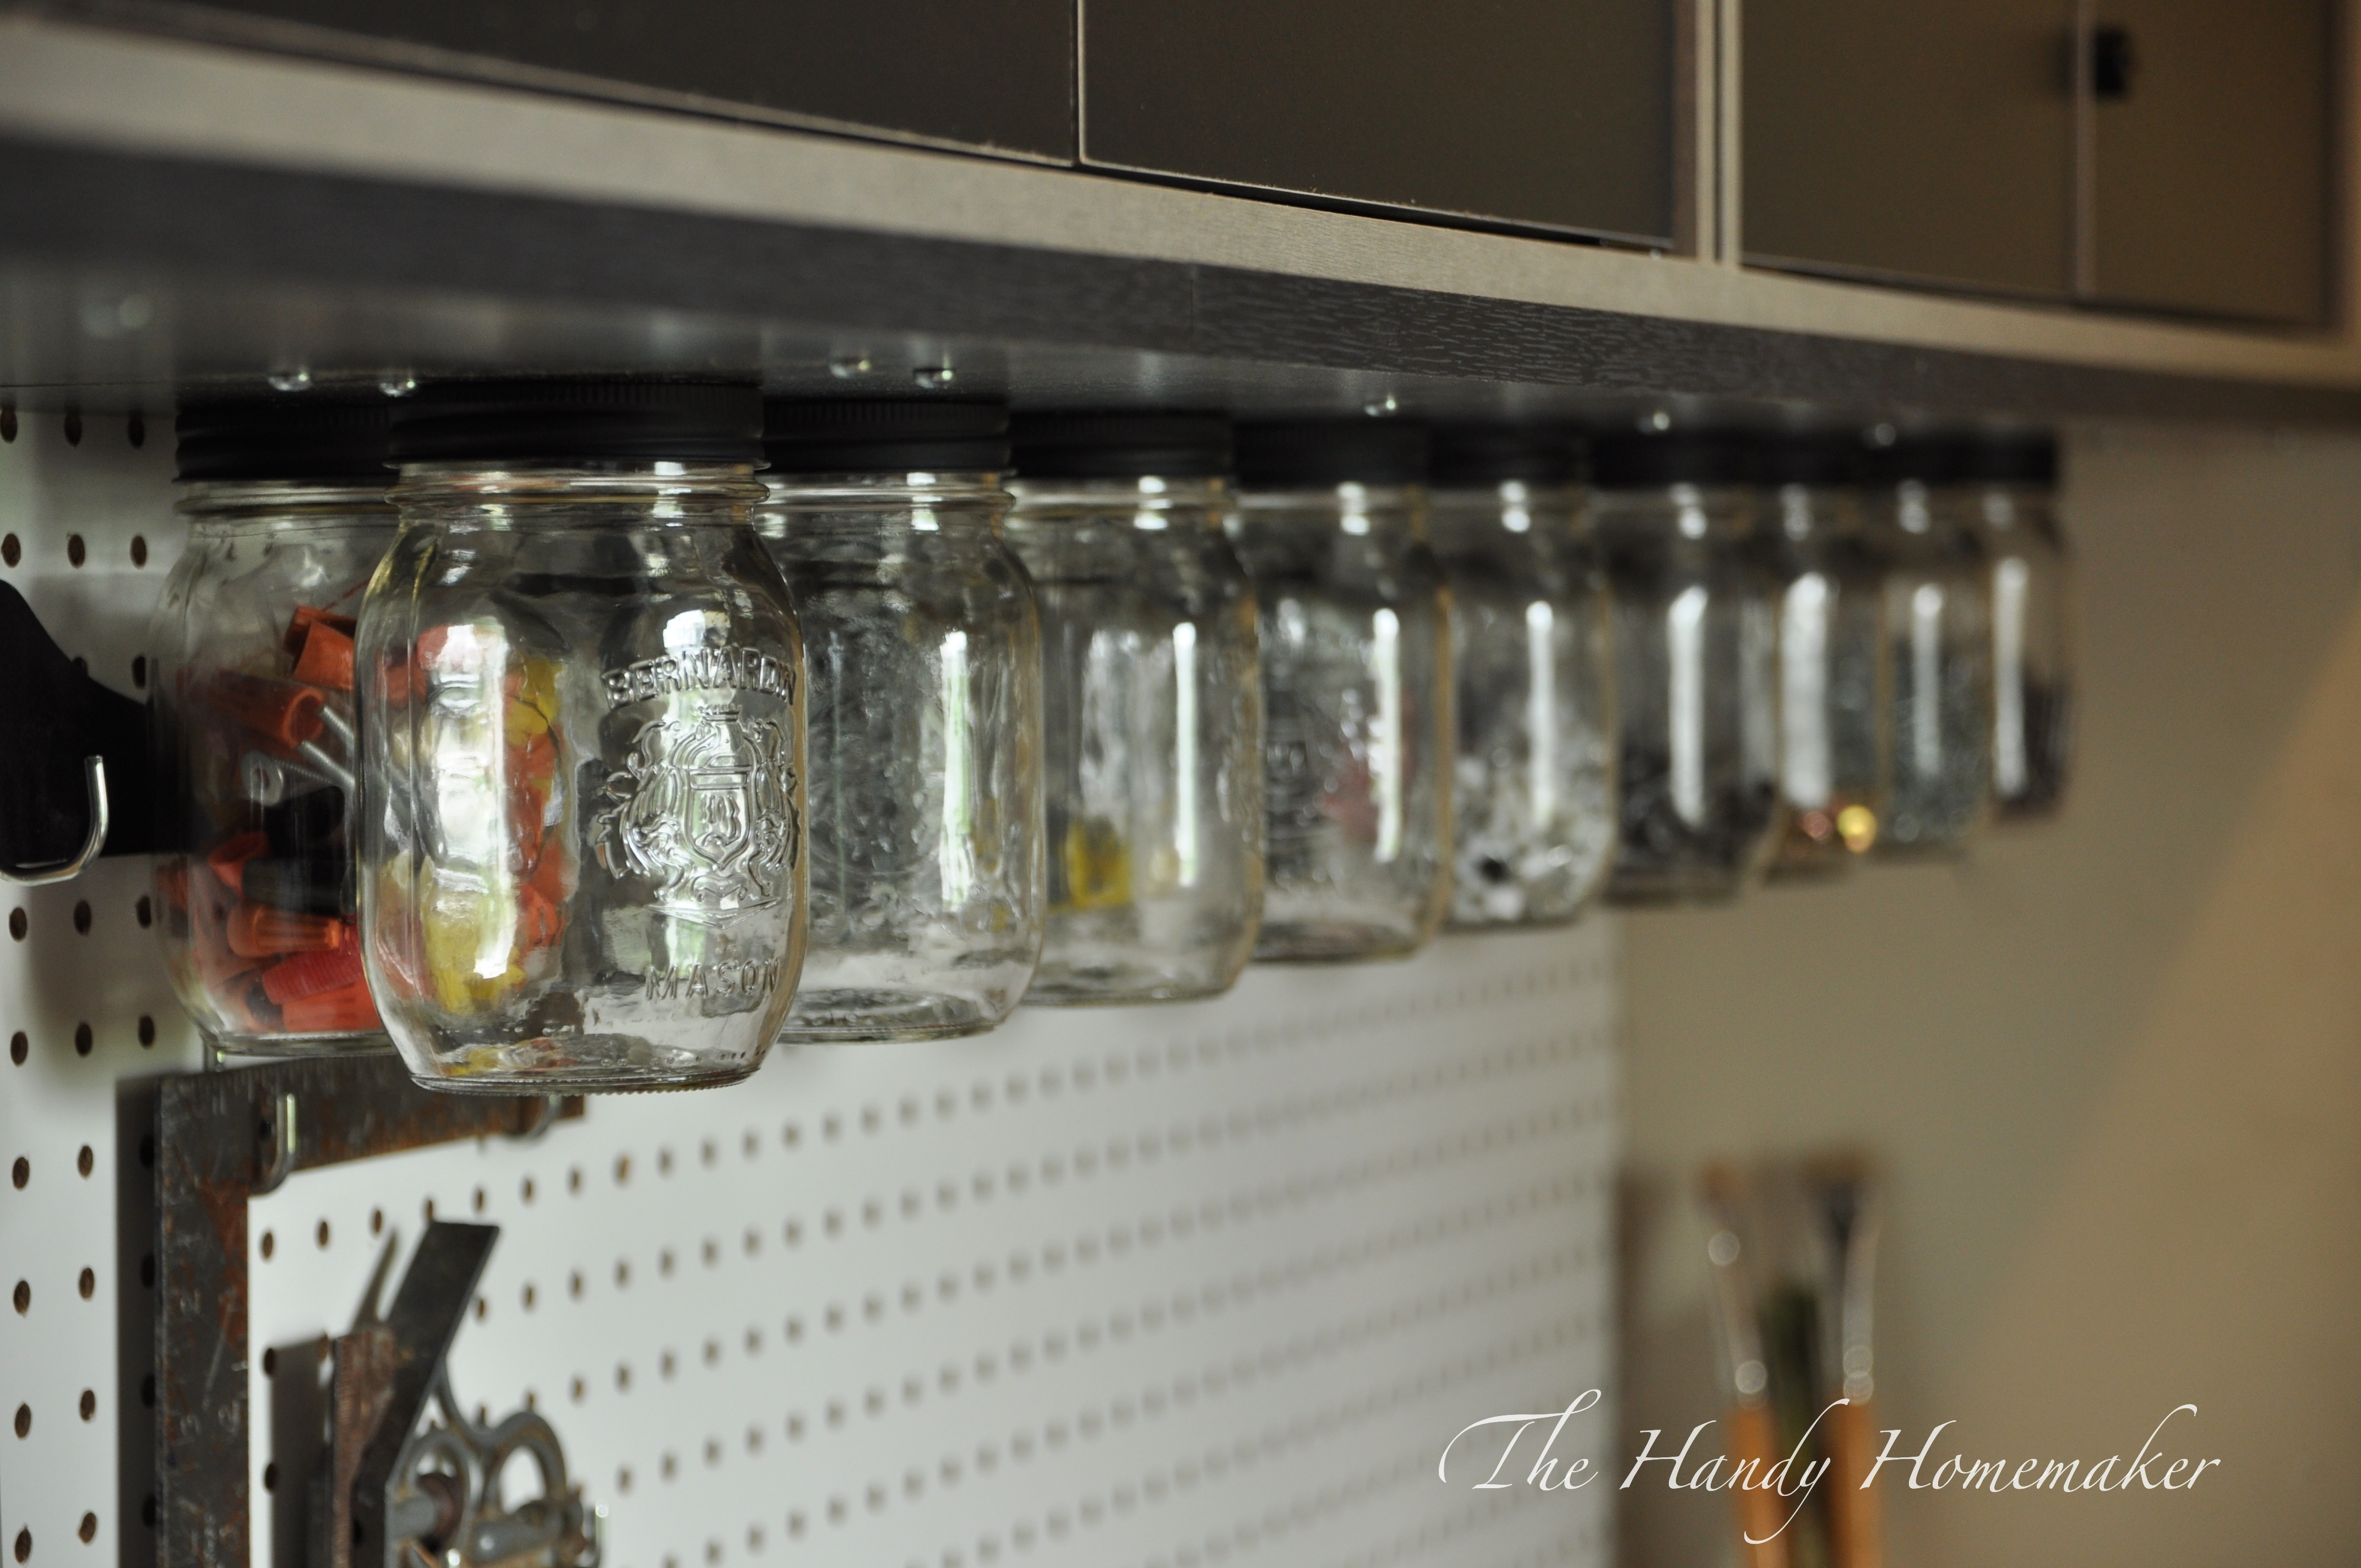 Merveilleux This Is An Easy Project To Help With Garage Storage. Iu0027ve Had This Type Of  Storage In Every House We Have Lived In. In Our First Home 22 Years Ago, ...